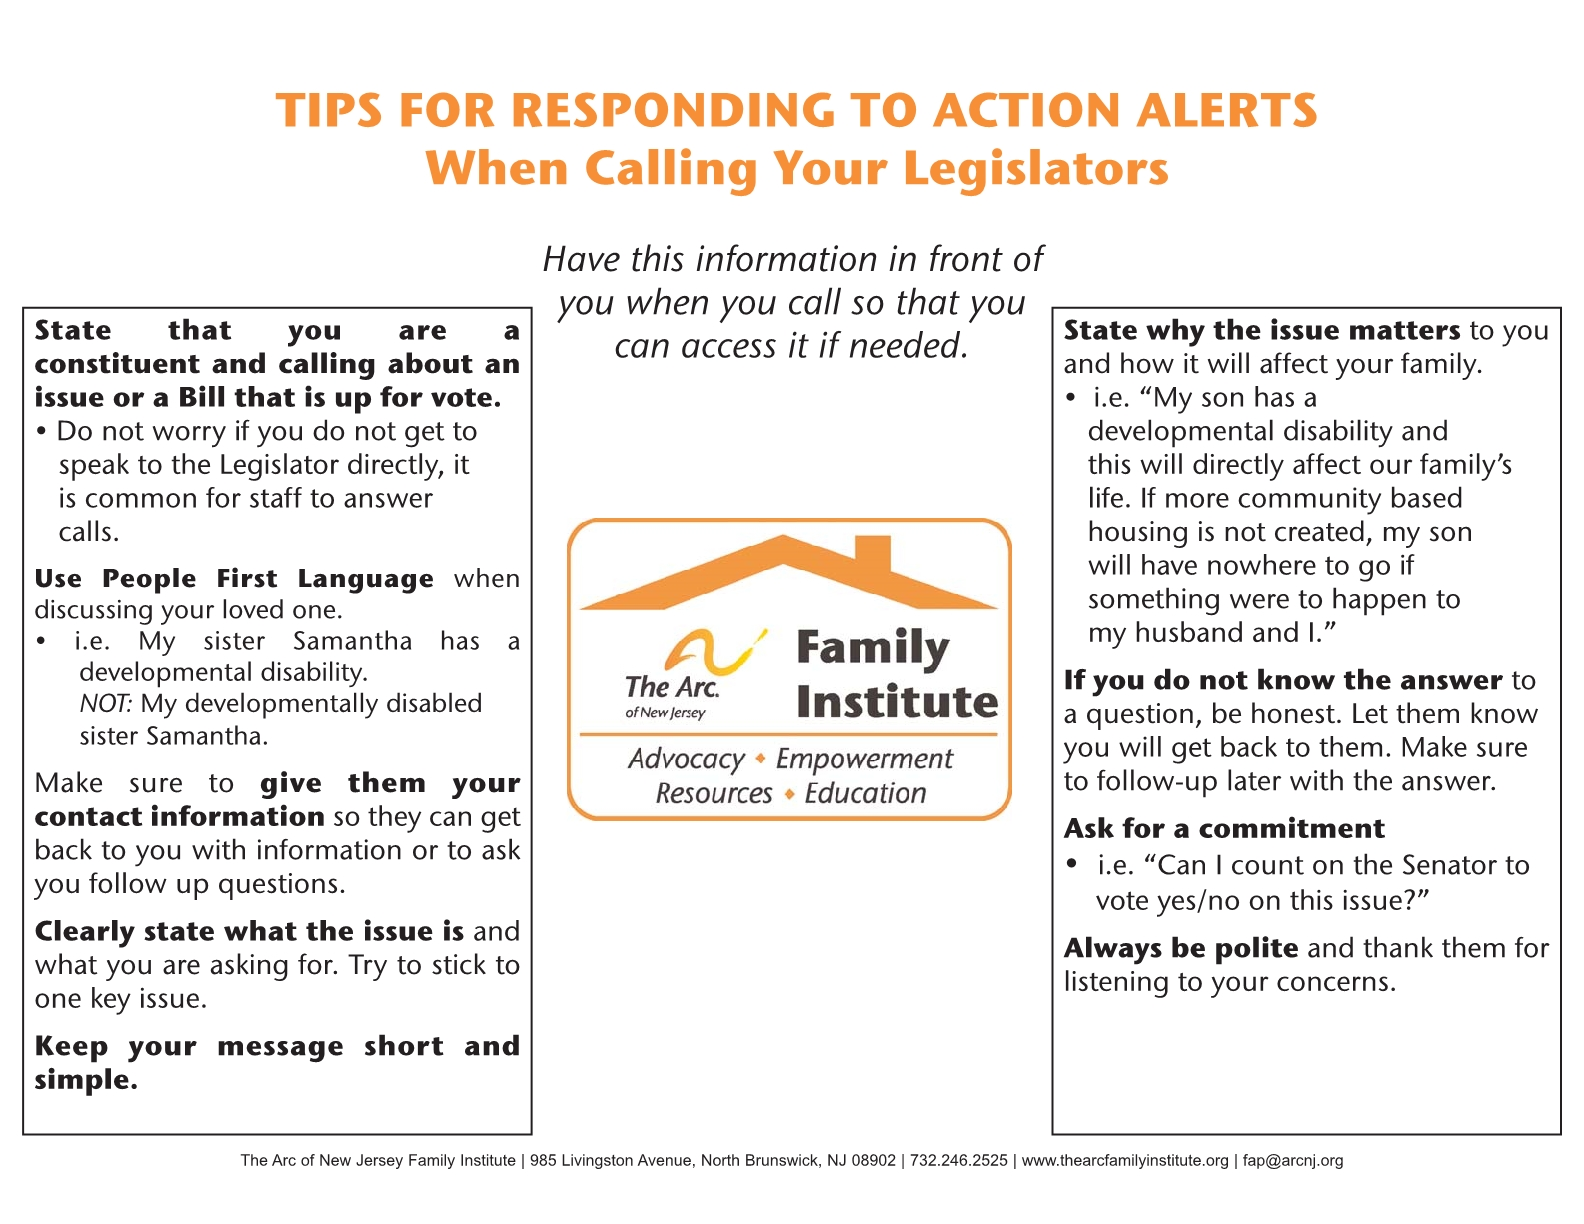 Tips for responding to action alerts when calling